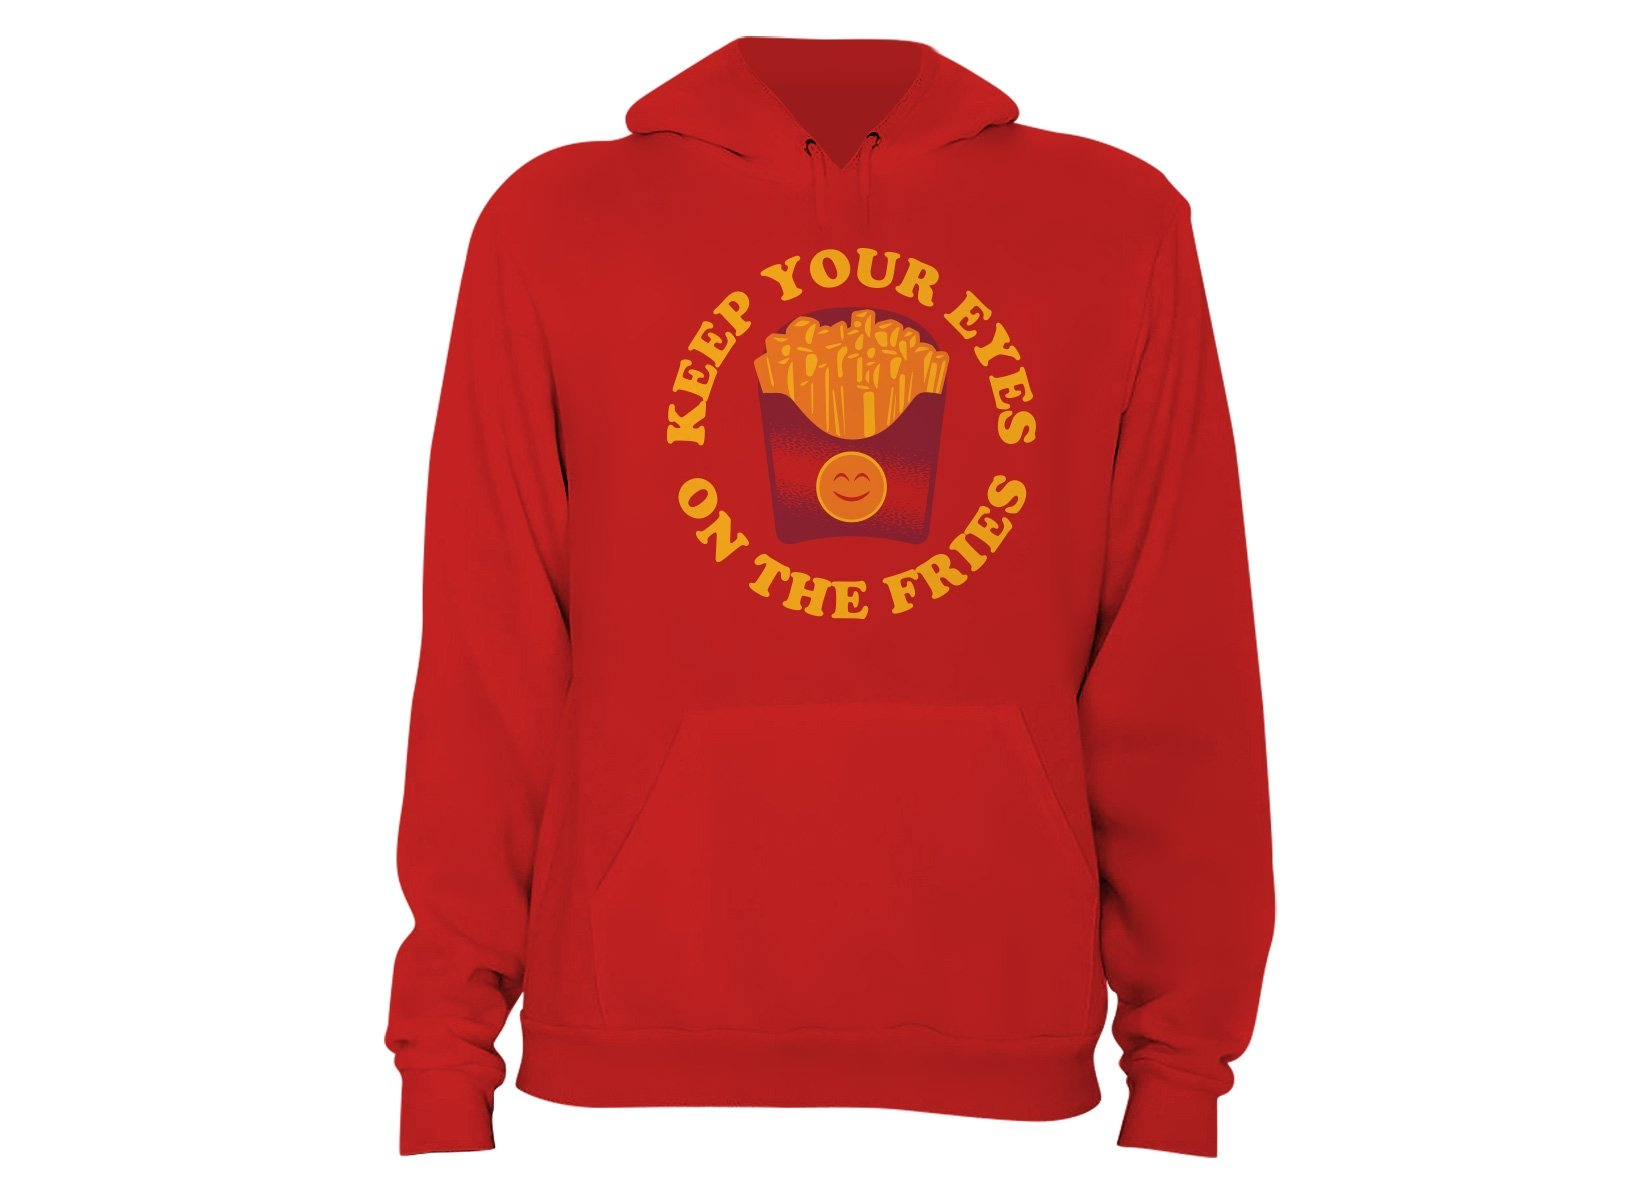 Keep Your Eyes On The Fries on Hoodie